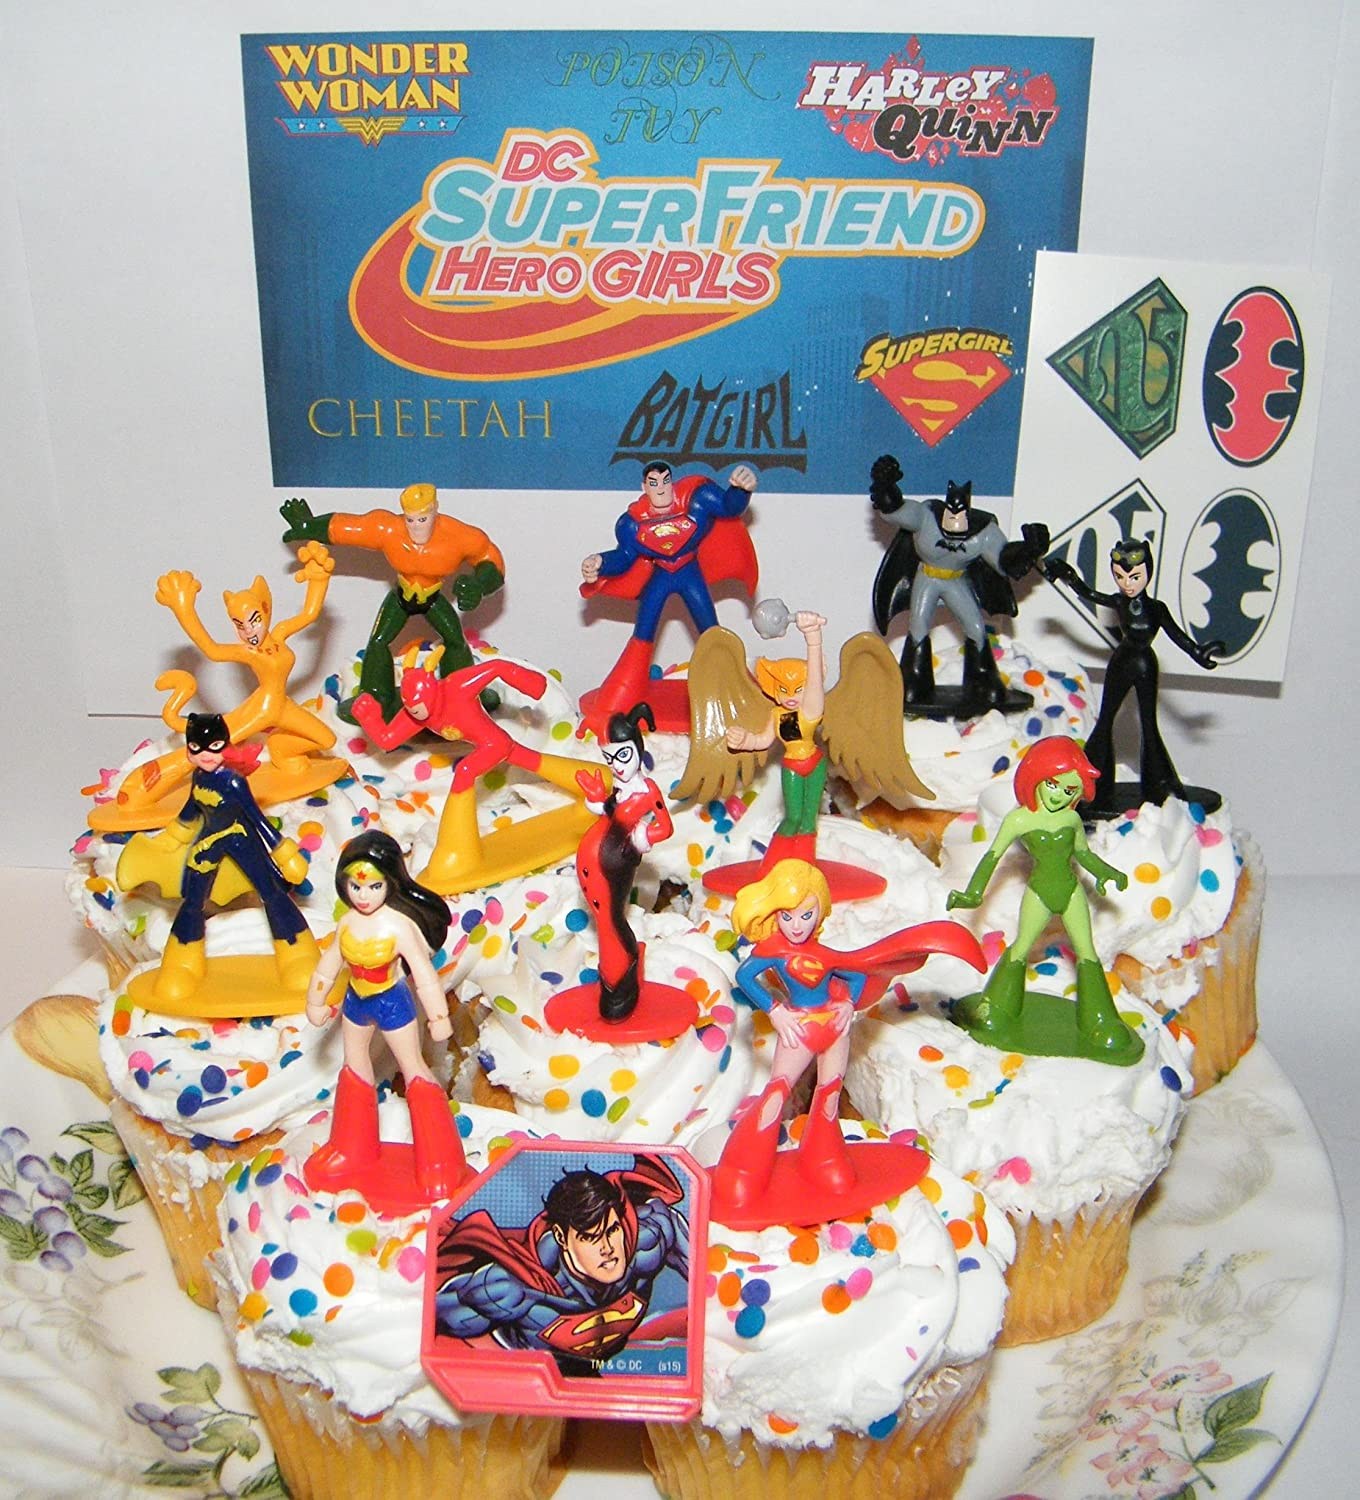 DC Super Friend Hero Girls Deluxe Mini Cake Toppers Cupcake Decorations Set Of 14 With Figures A Sticker Sheet And Toy Ring Featuring Wonder Woman